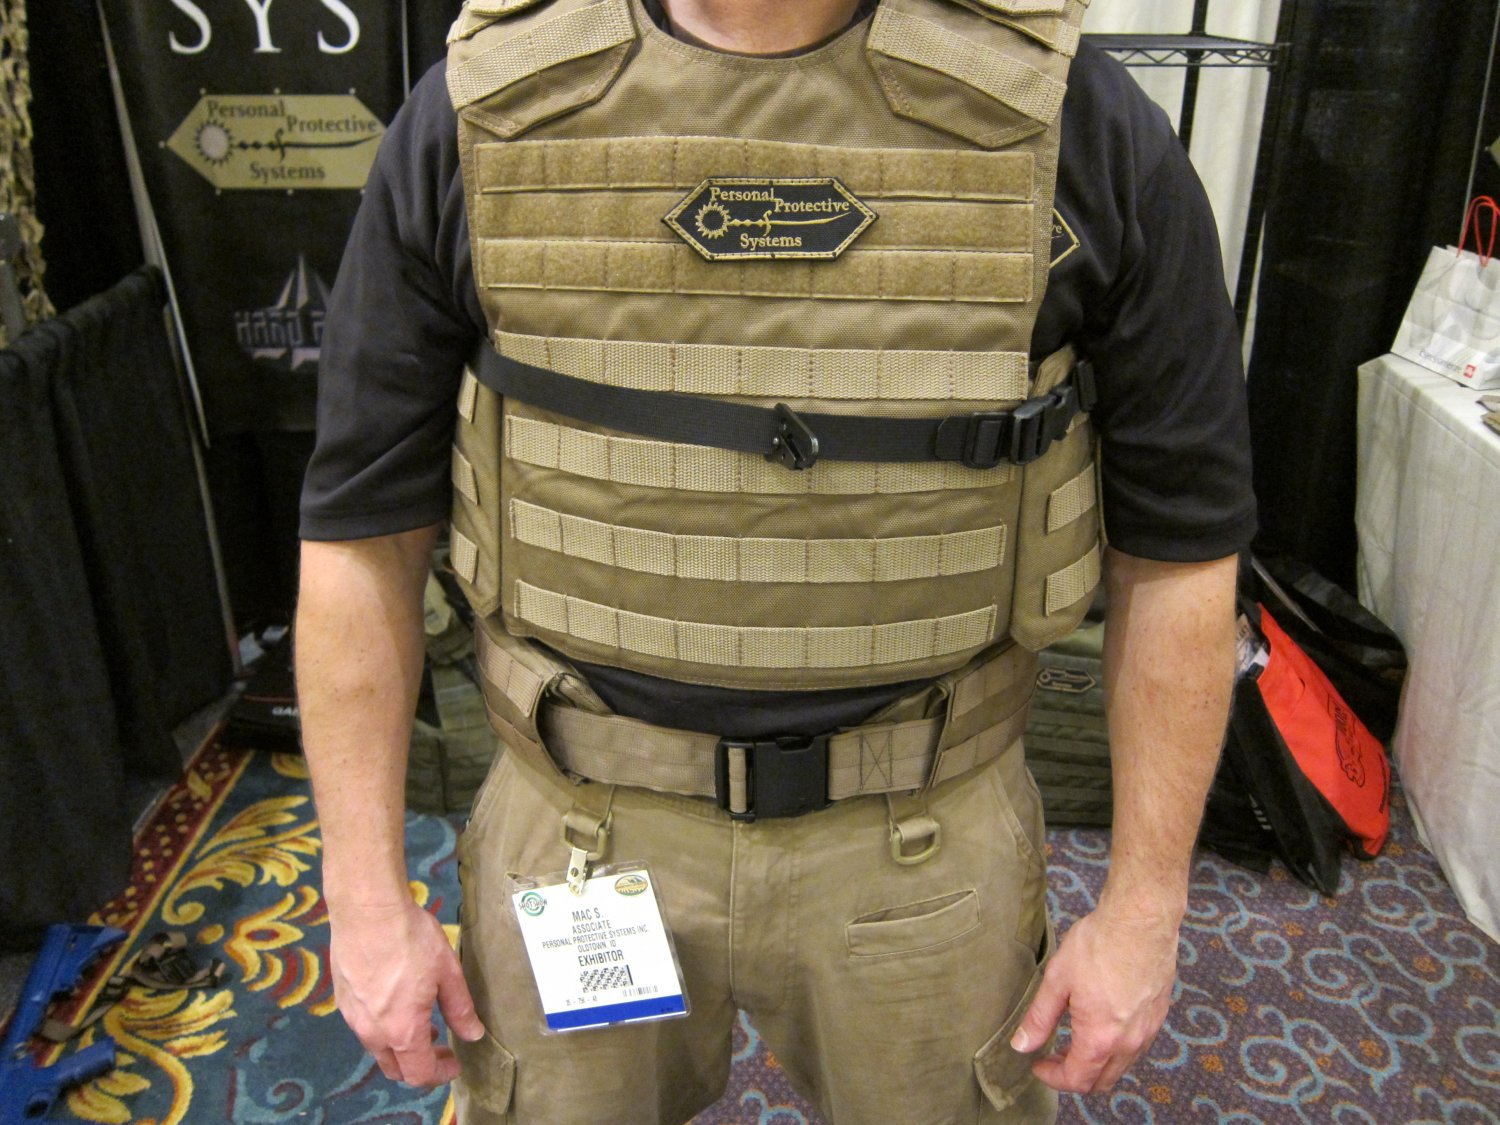 <!--:en-->Hardpoint Equipment Tactical Armor Carriers (formerly Personal Protective Systems, or P2 Systems): Best Tactical Body Armor Plate Carriers on the Planet? DR Looks at the Latest Hard Point Hard Armor Plate Carriers, Battle Belt, MOLLE Backpack System, and Passive Ventilation Channels/Removable Padding System at SHOT Show 2011 (Photos and Video!) <!--:-->